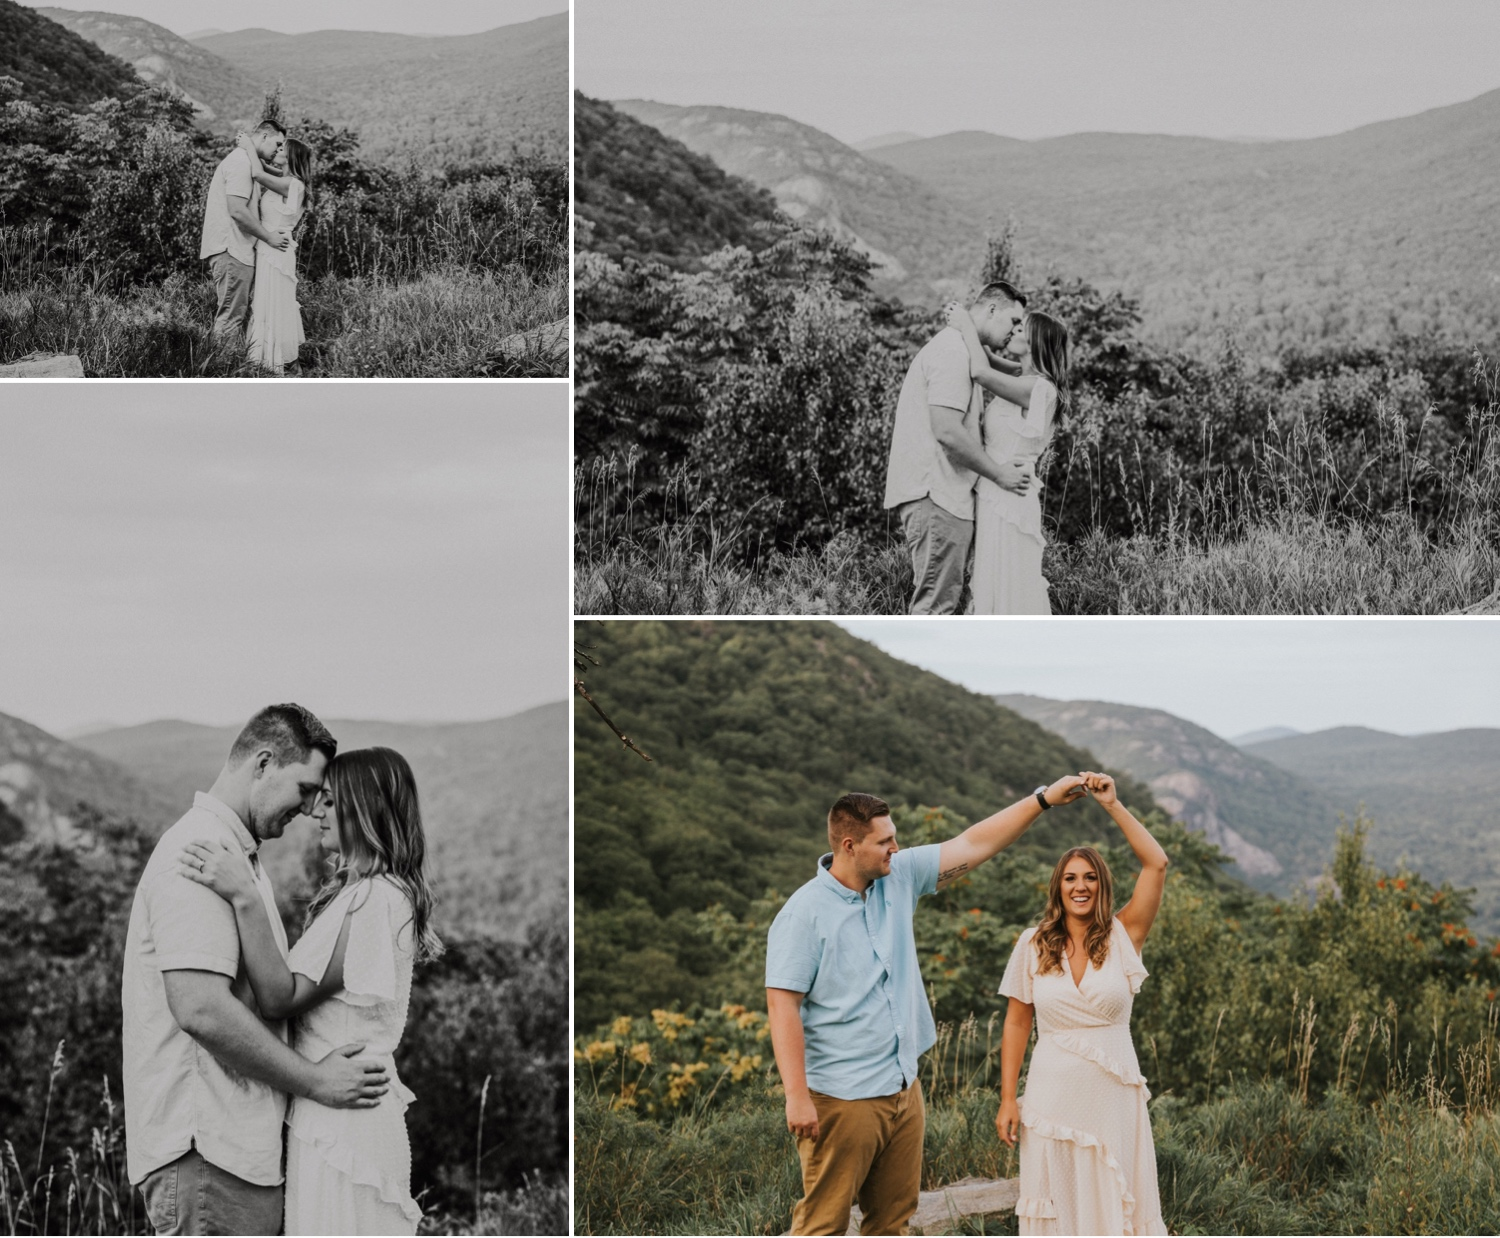 Hudson Valley Wedding Photographer, New York Wedding Photographer, Hudson Valley Engagement Session, Storm King Mountain, Moodna Viaduct, Cornwall Wedding Photographer